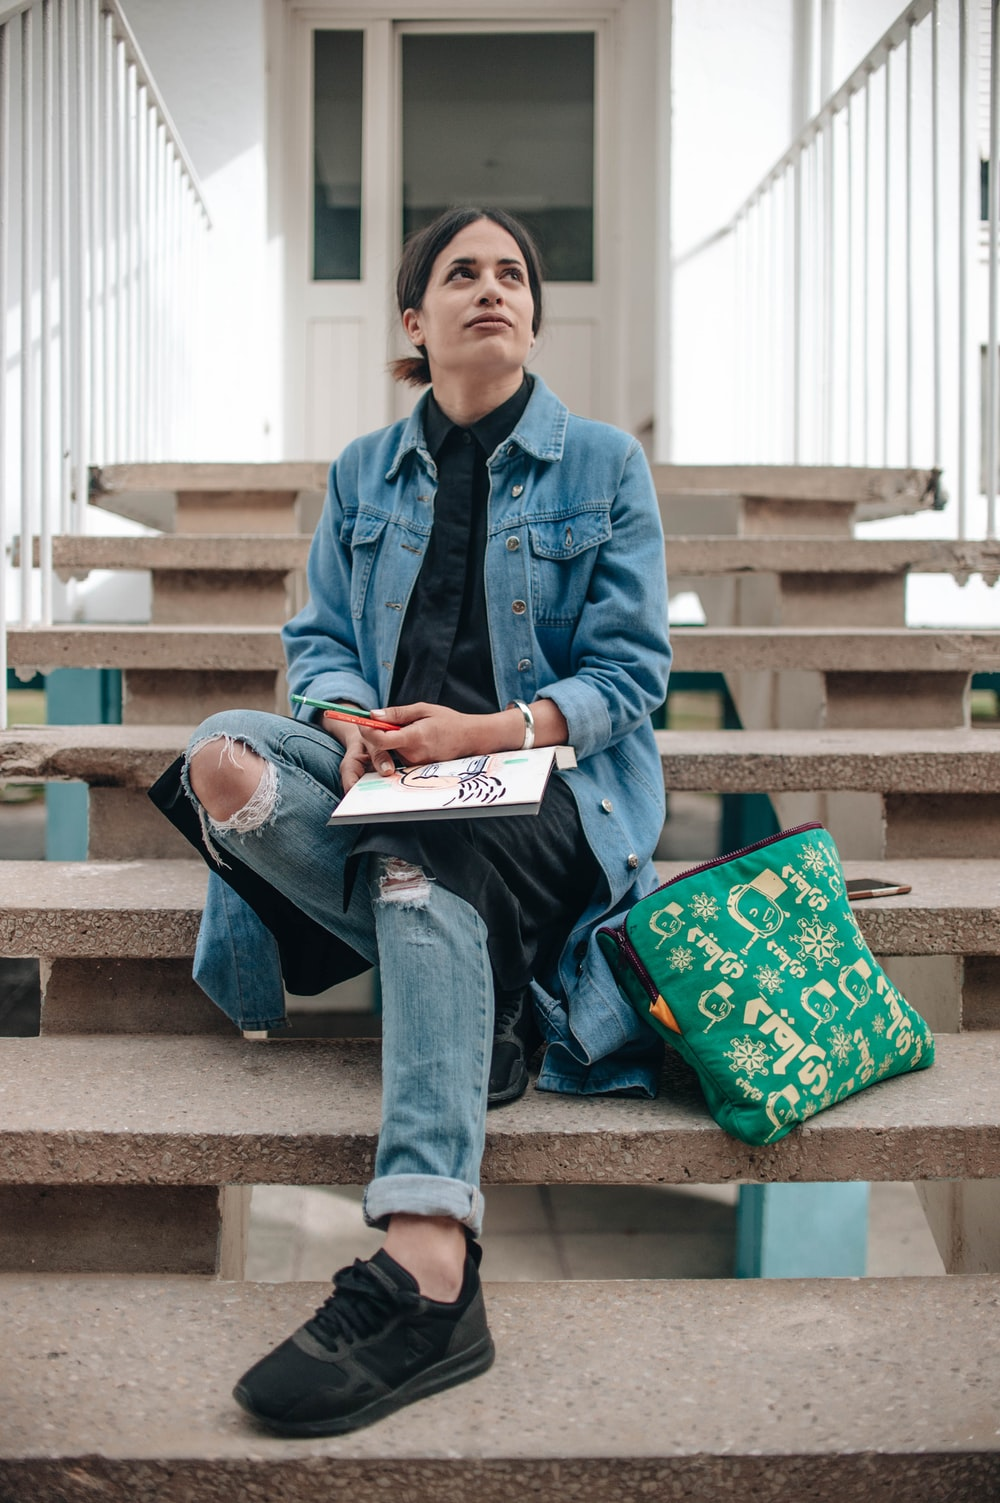 woman sitting on concrete stair with book on lap